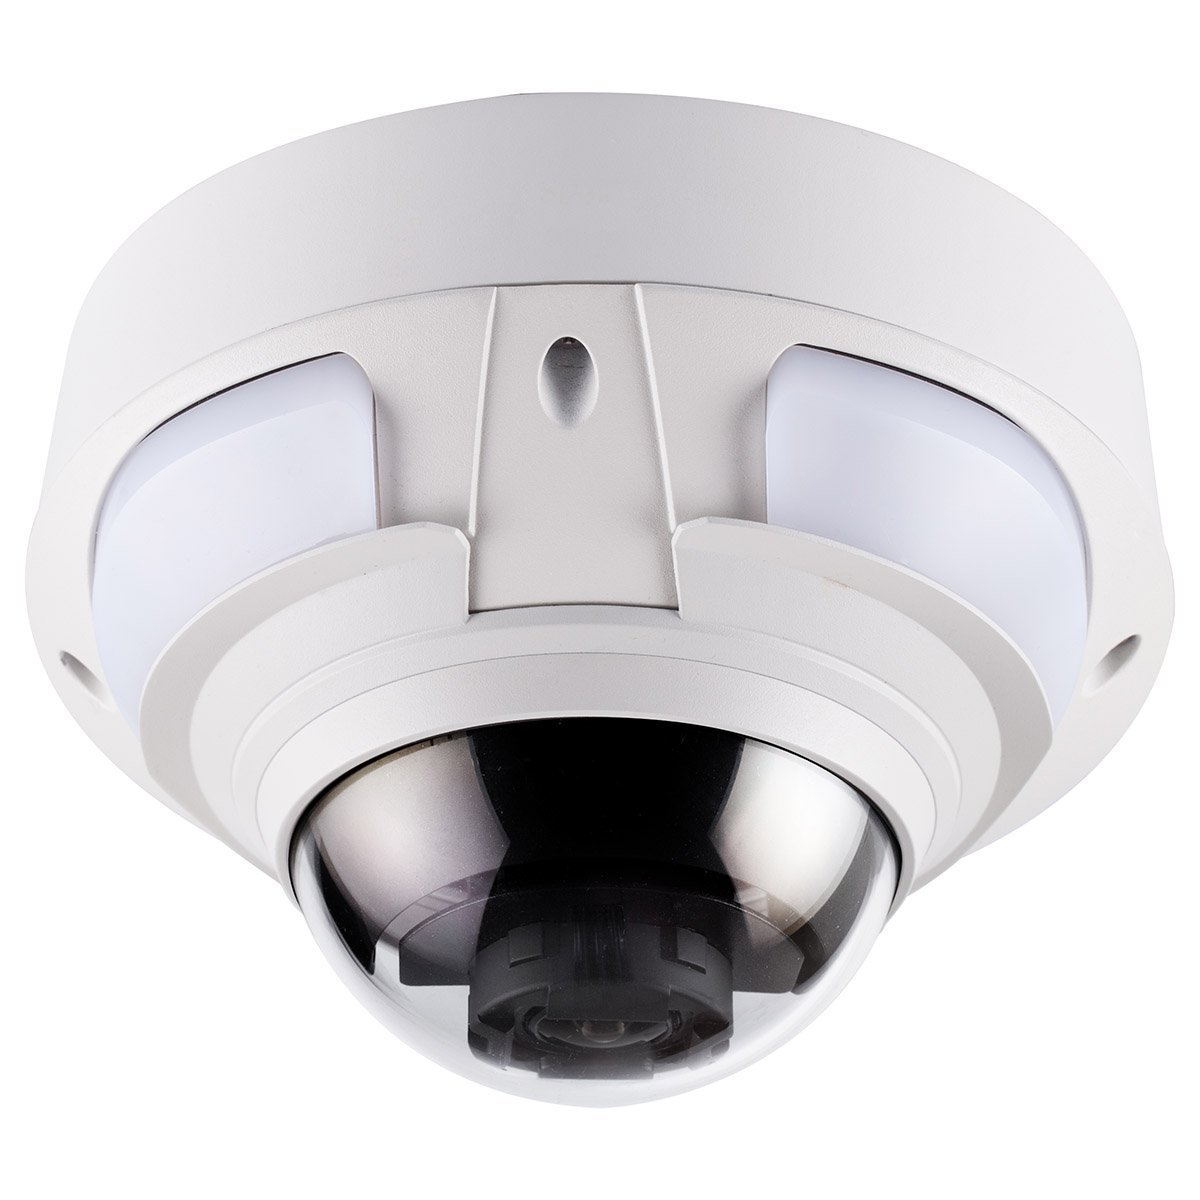 GeoVision Night Vision Video Security